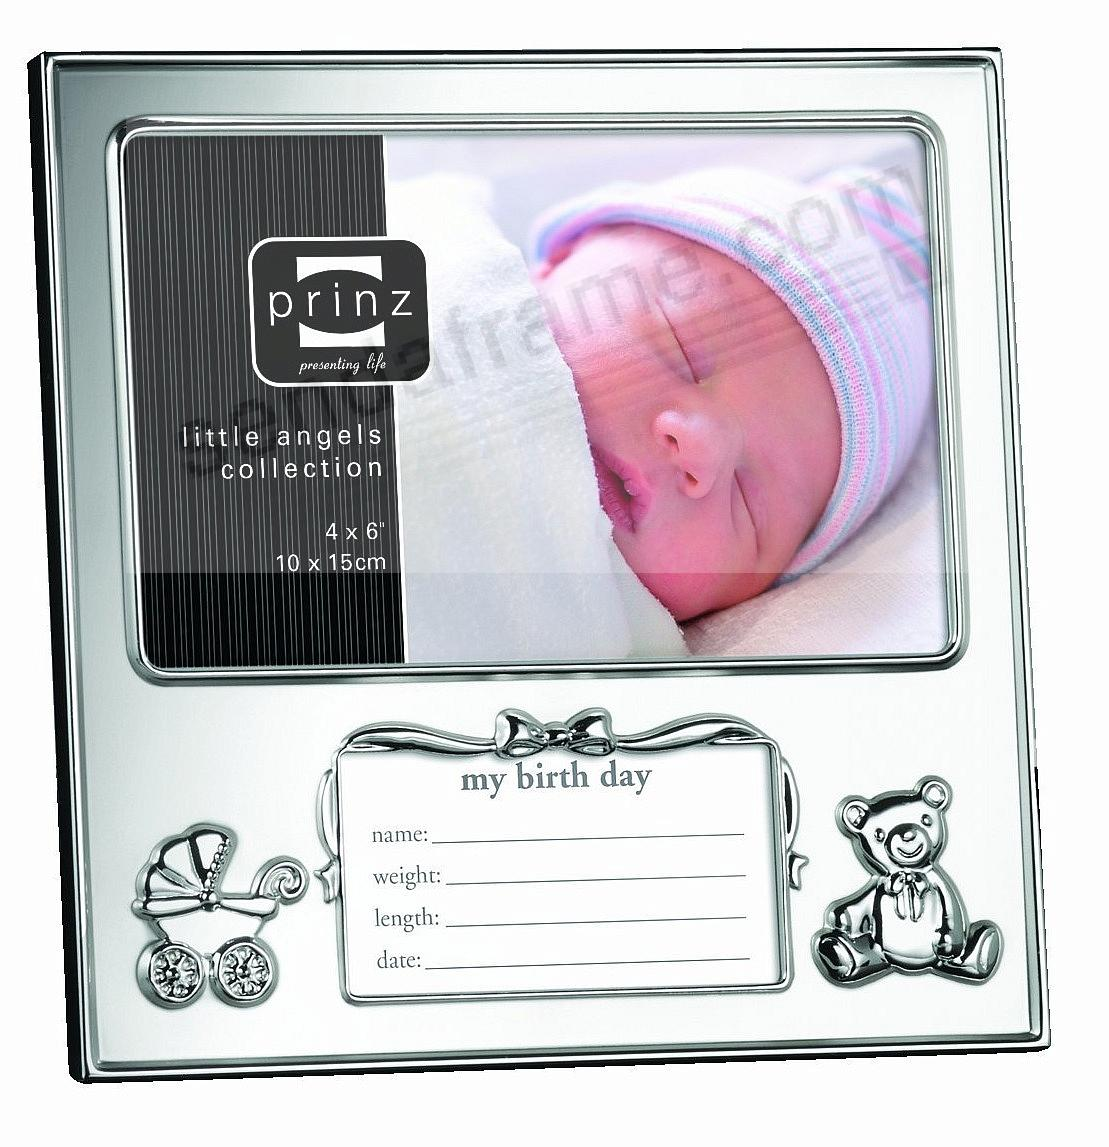 JUST ARRIVED: Newborn Birth Record frame by Prinz® - Picture Frames ...